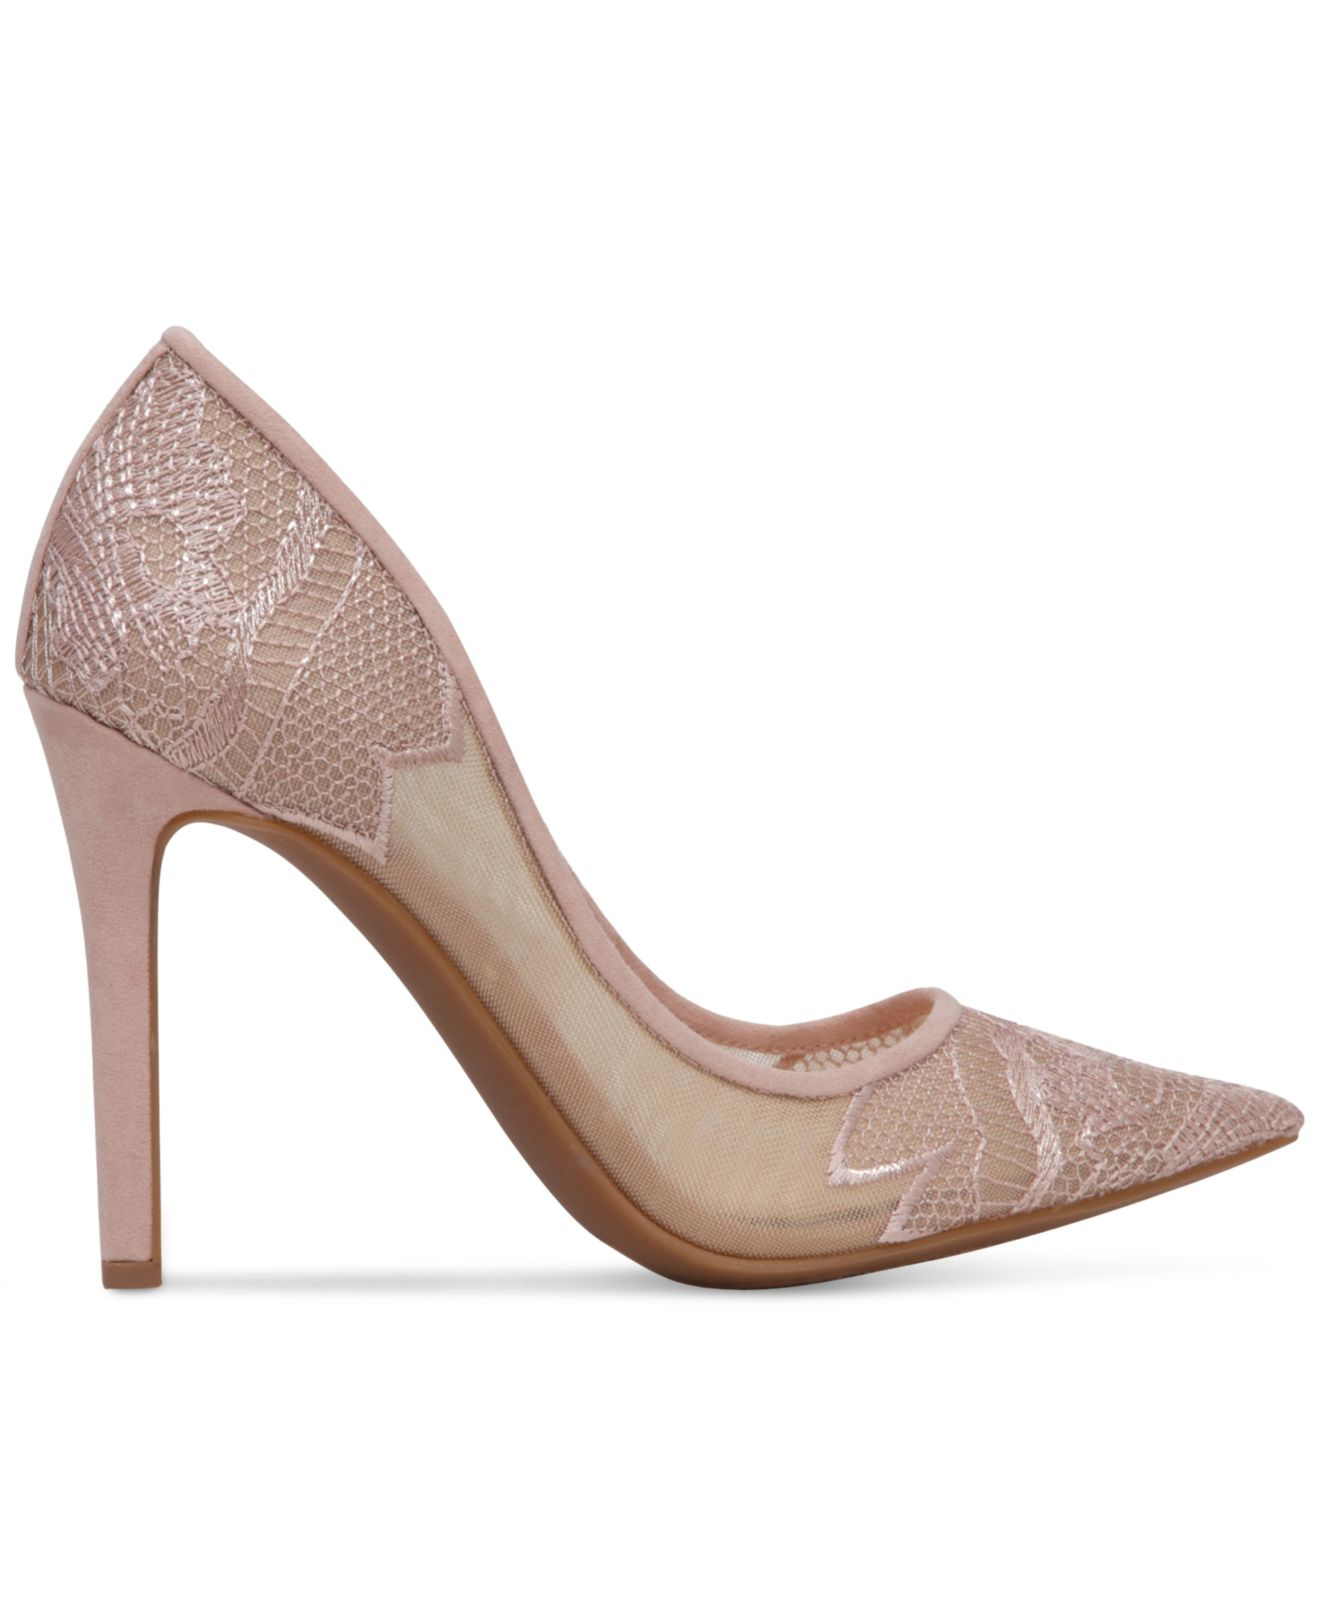 Jessica simpson Camba Lace Pointed-toe Pumps in Natural